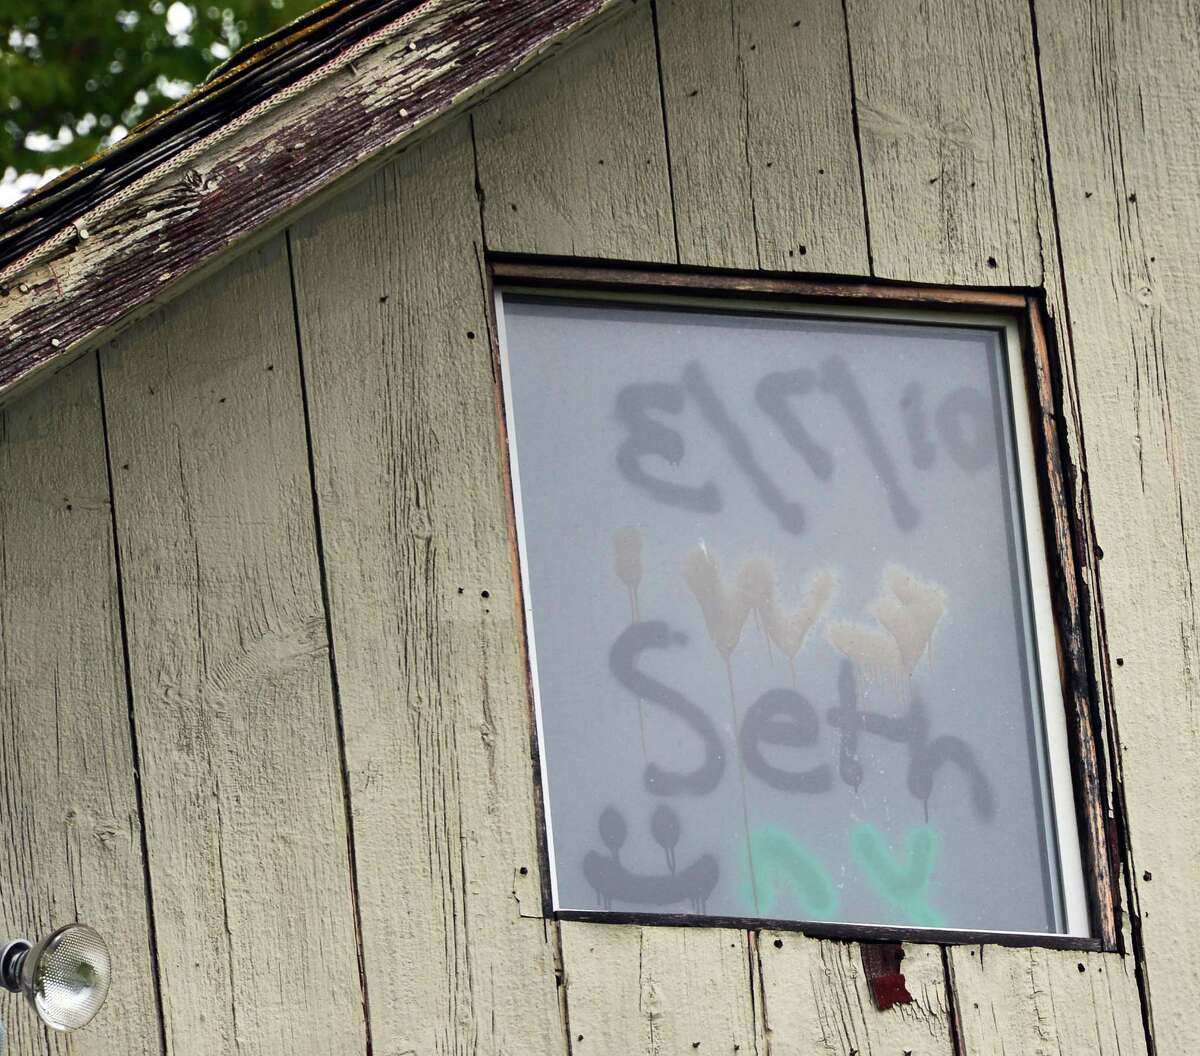 Graffiti in the window of a building at the seasonal home of former NFL star Brian Holloway Thursday, Sept. 12, 2013, in Stephentown, N.Y. (John Carl D'Annibale / Times Union)